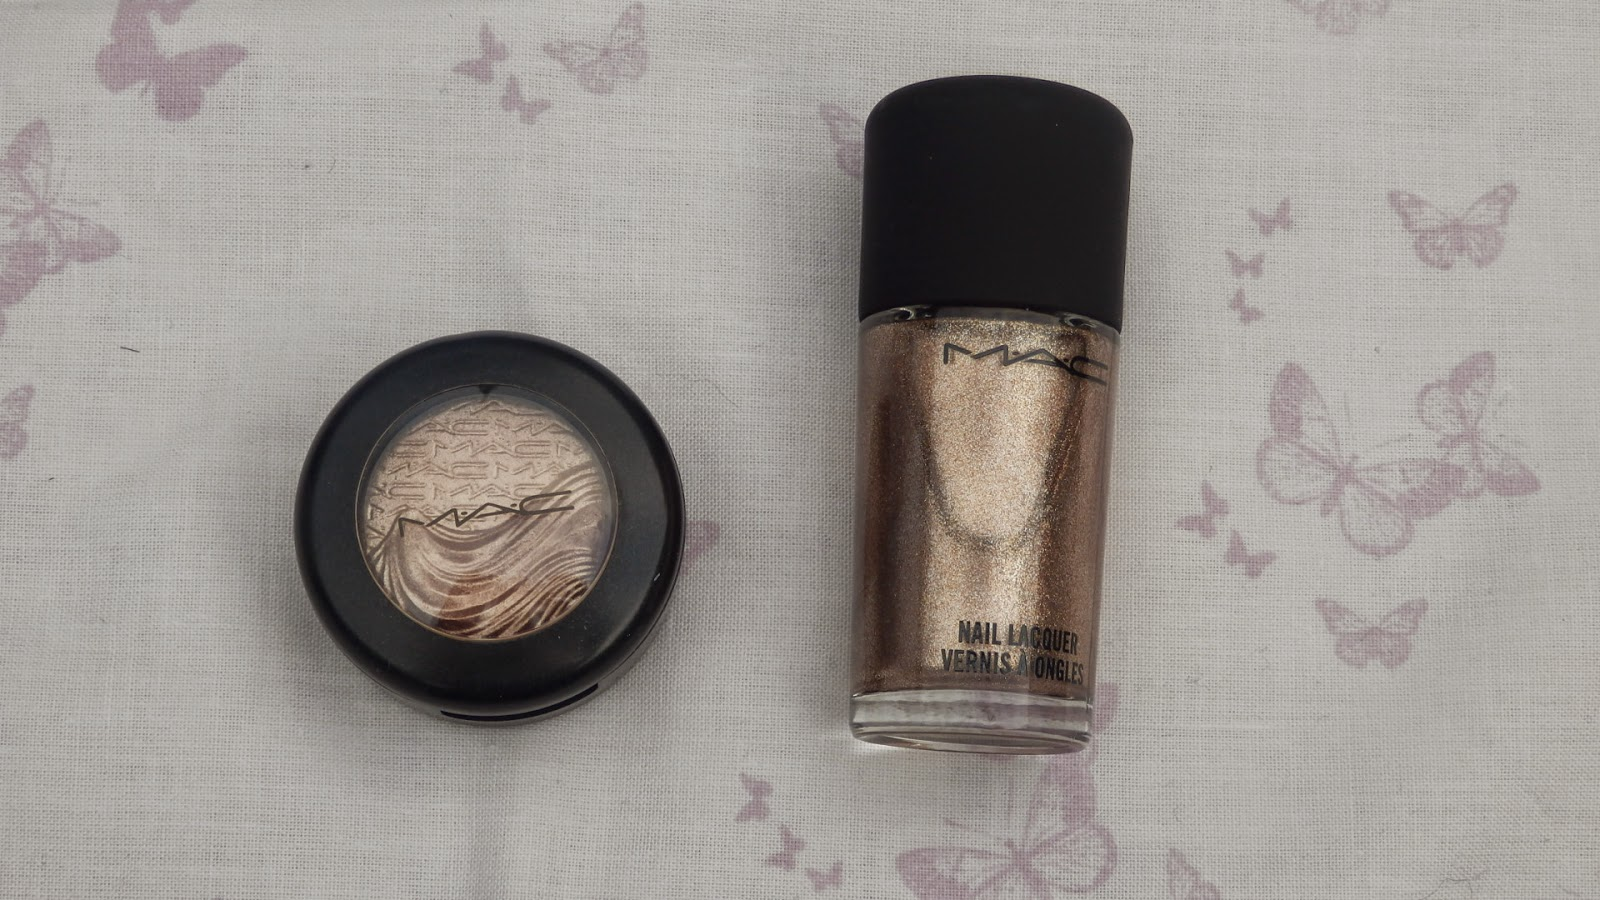 MAC Extra Dimension Eyeshadow in Sweet Heat & MAC Nail Lacquer in Soiree